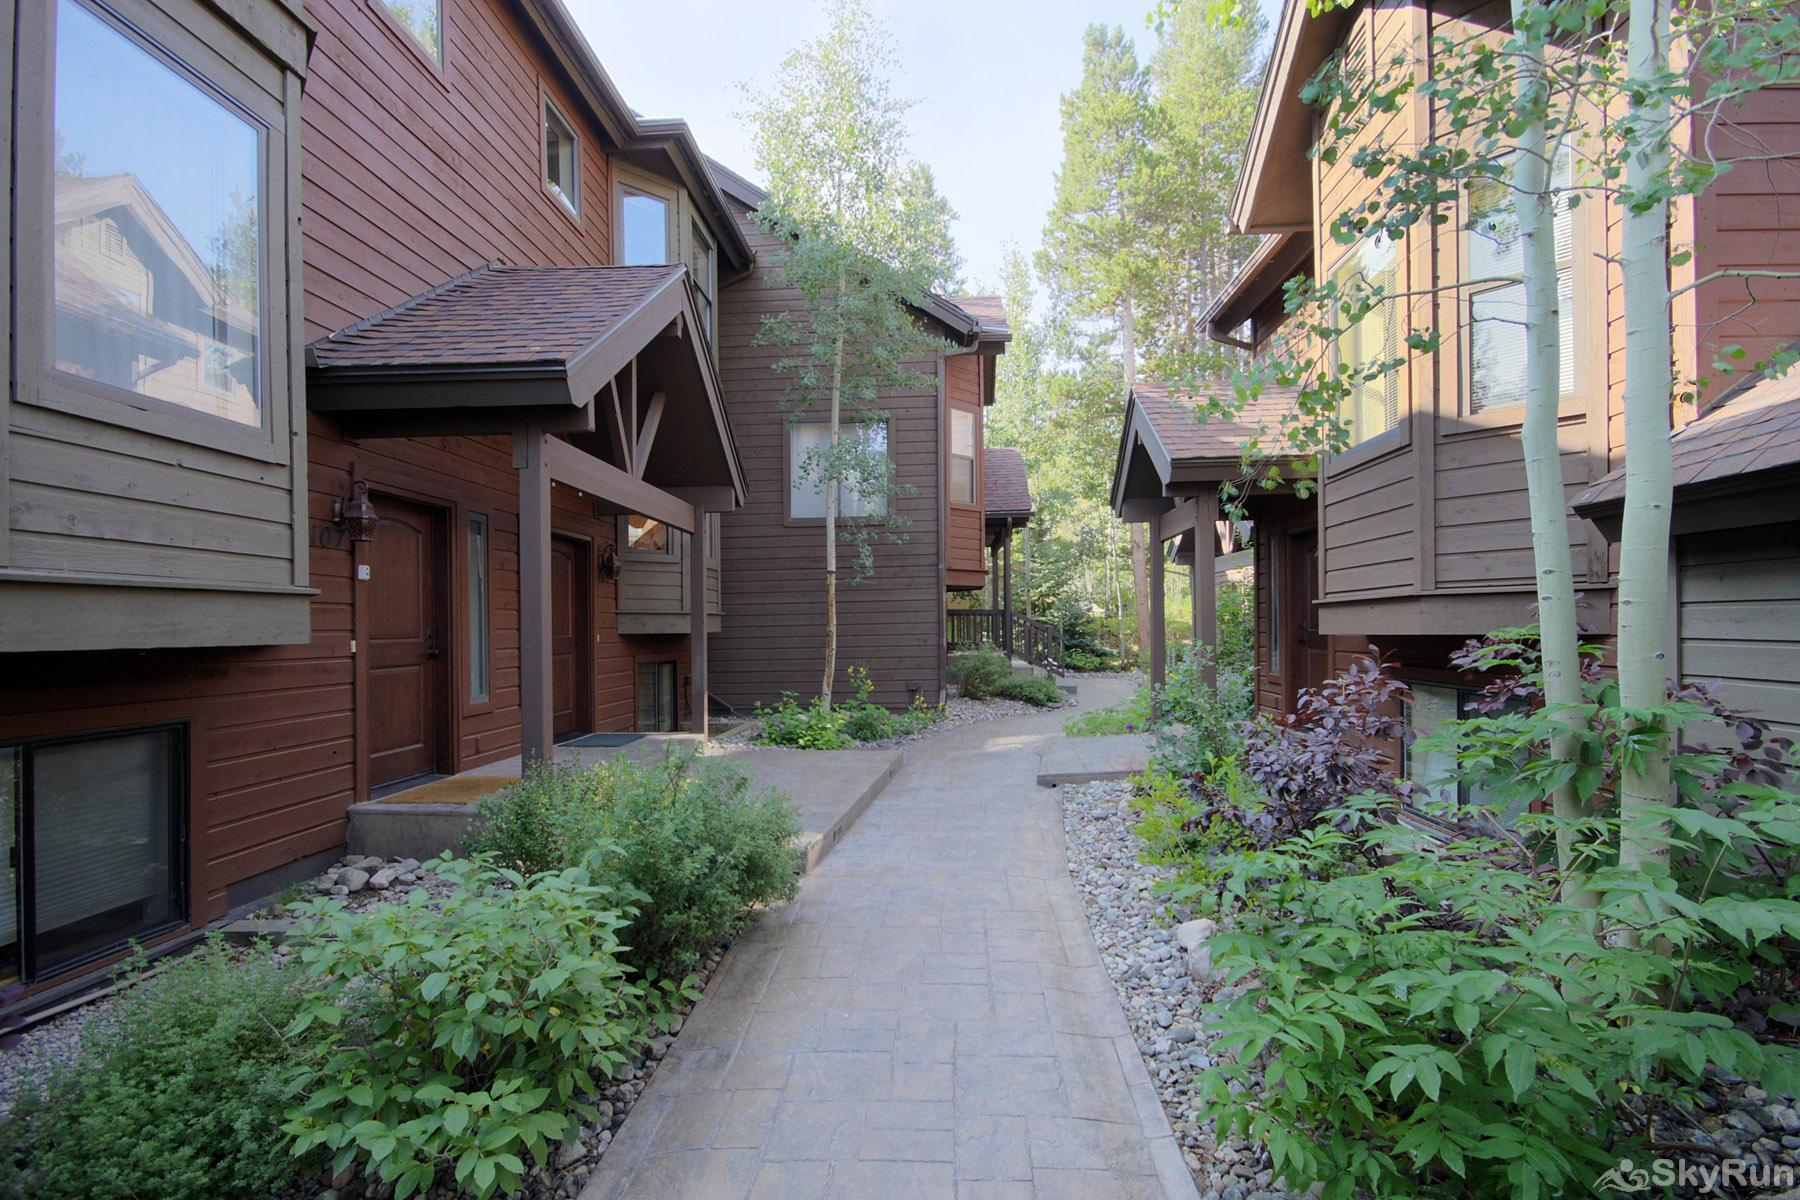 Village Point 109 Well maintained townhome complex is peaceful & quiet